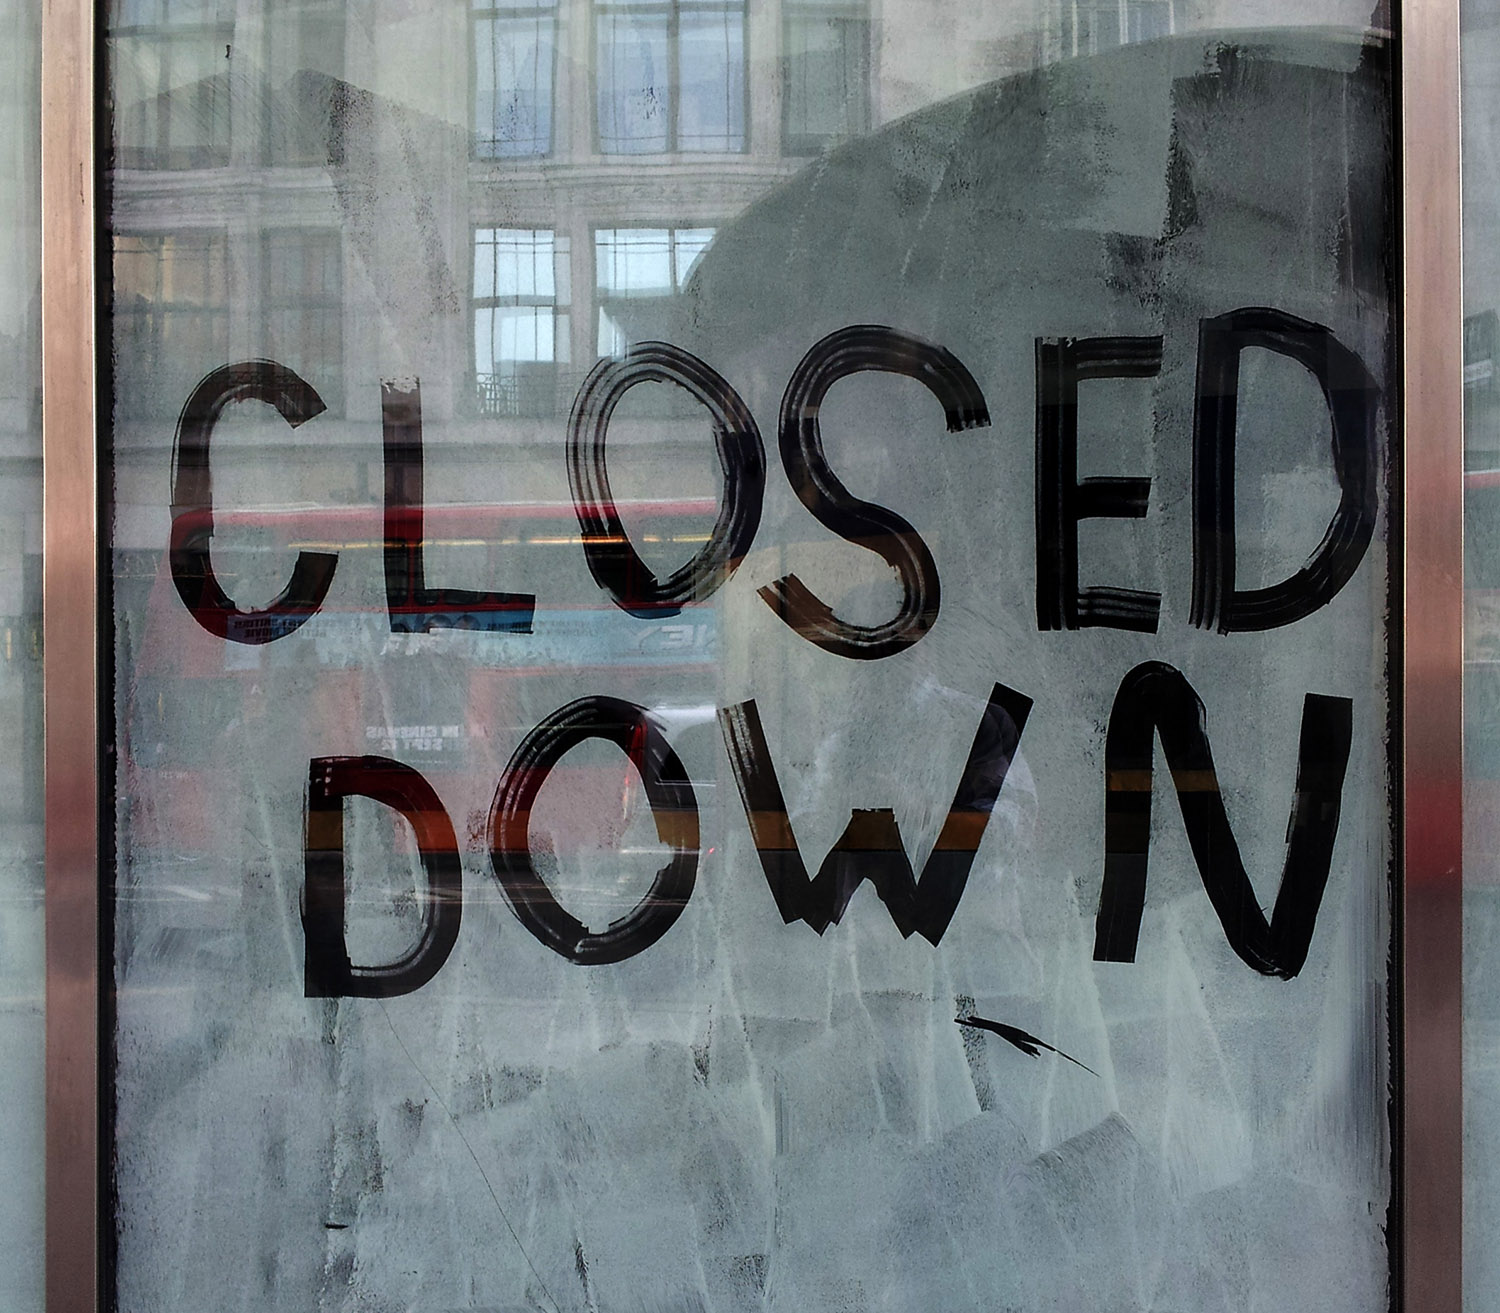 pub closed sign